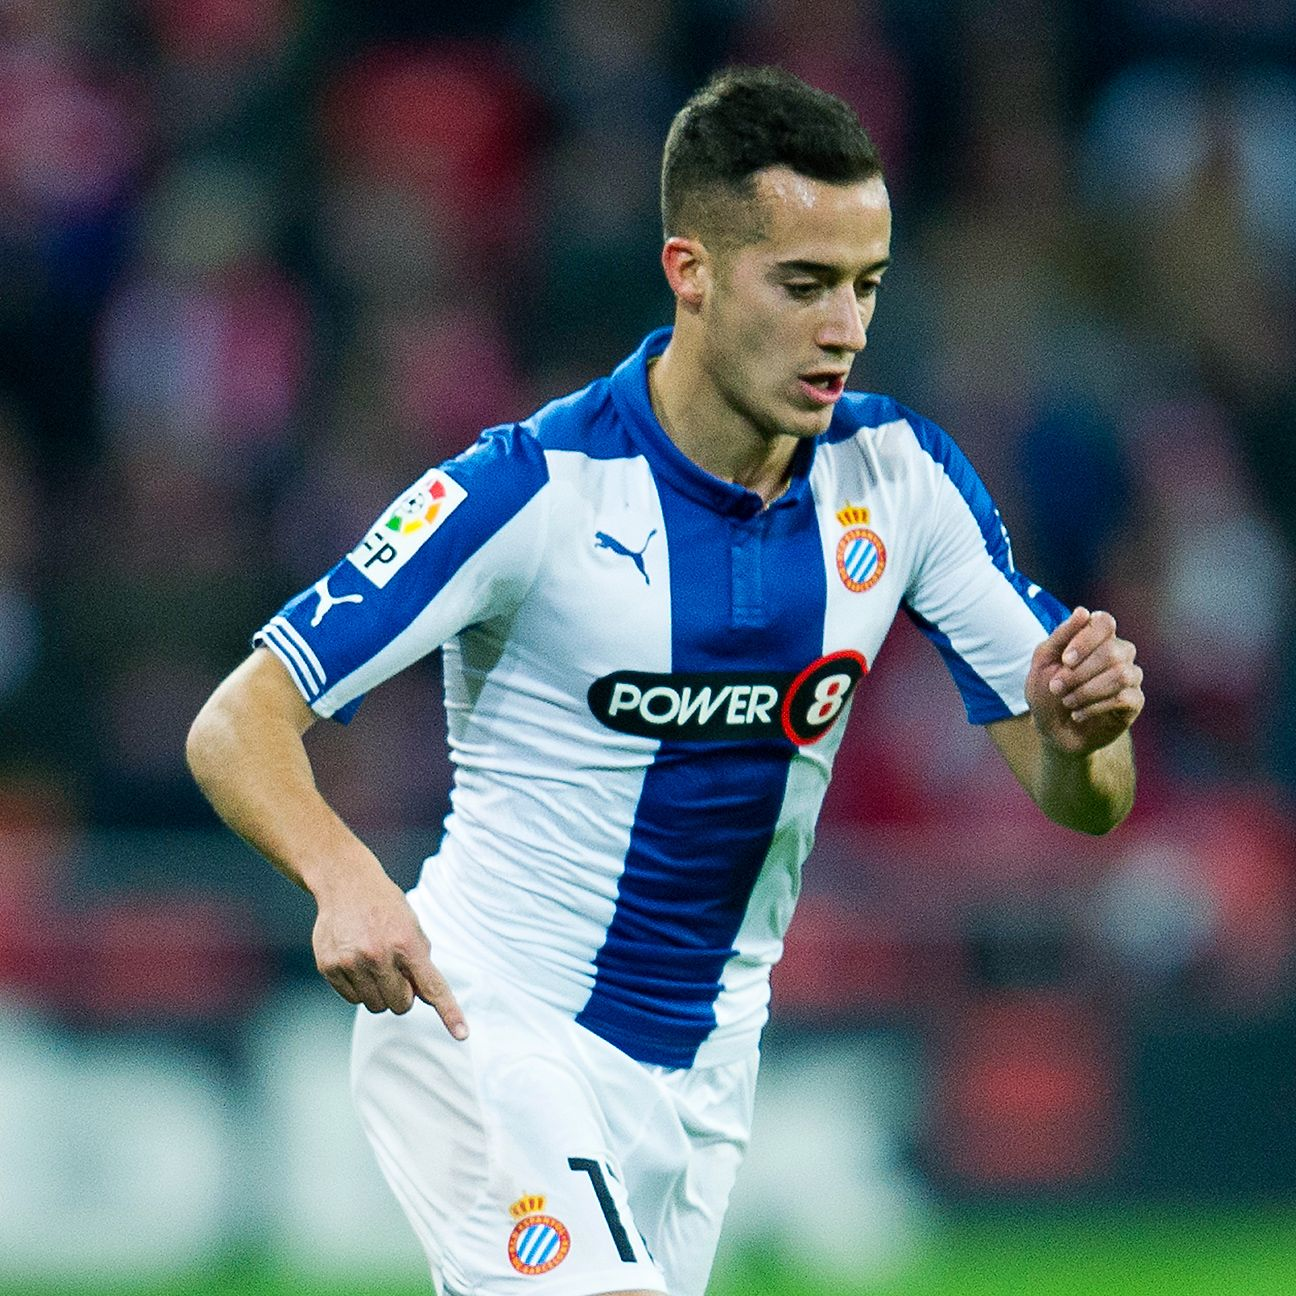 Five Things To Know About Real Madrid's Lucas Vazquez